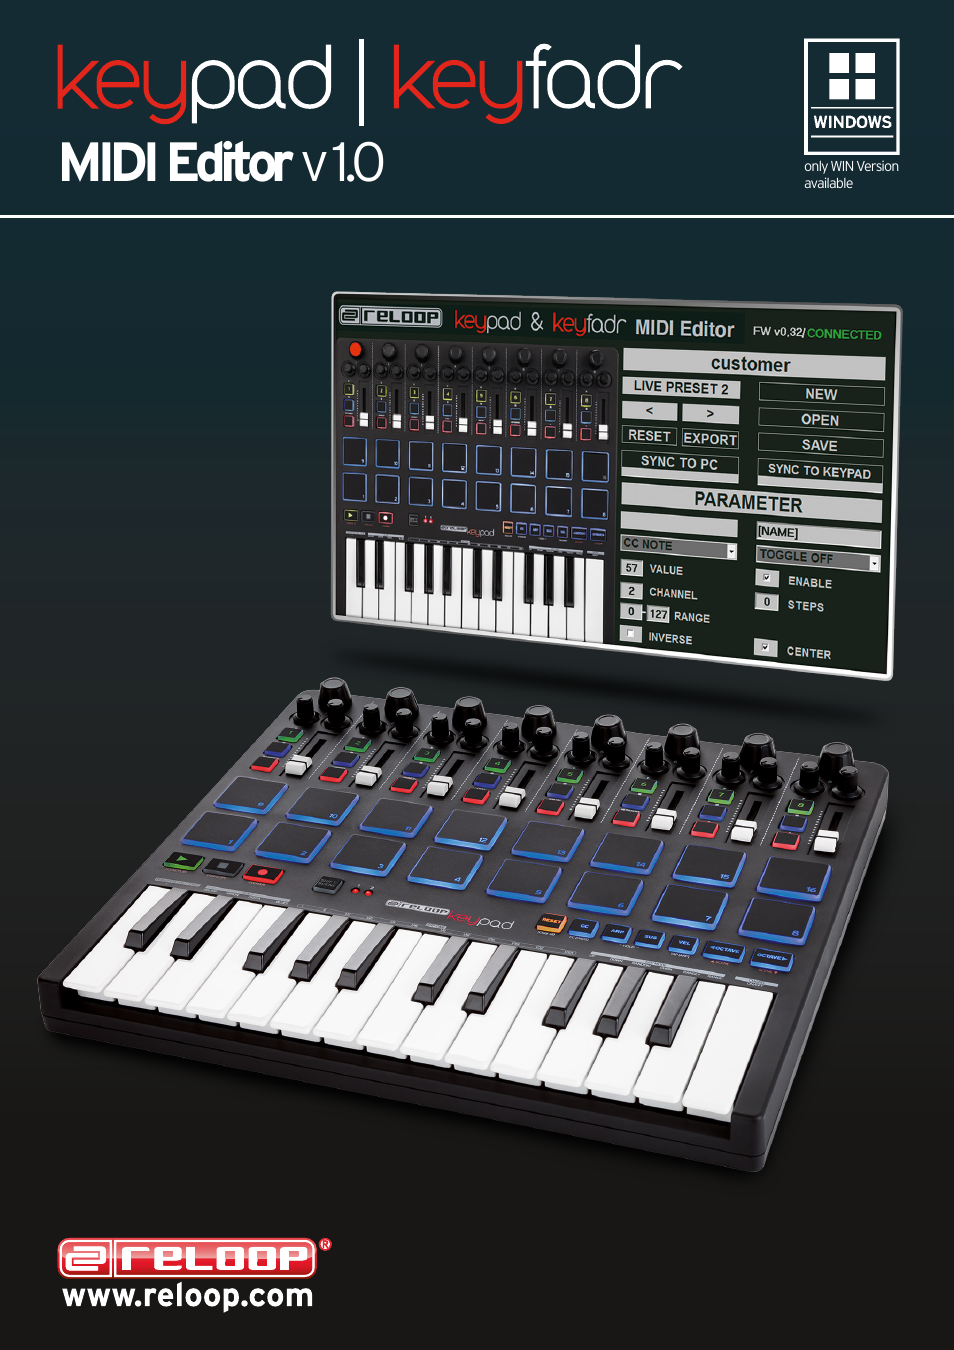 Reloop KEYPAD - MIDI Editor Guide User Manual | 3 pages | Also for